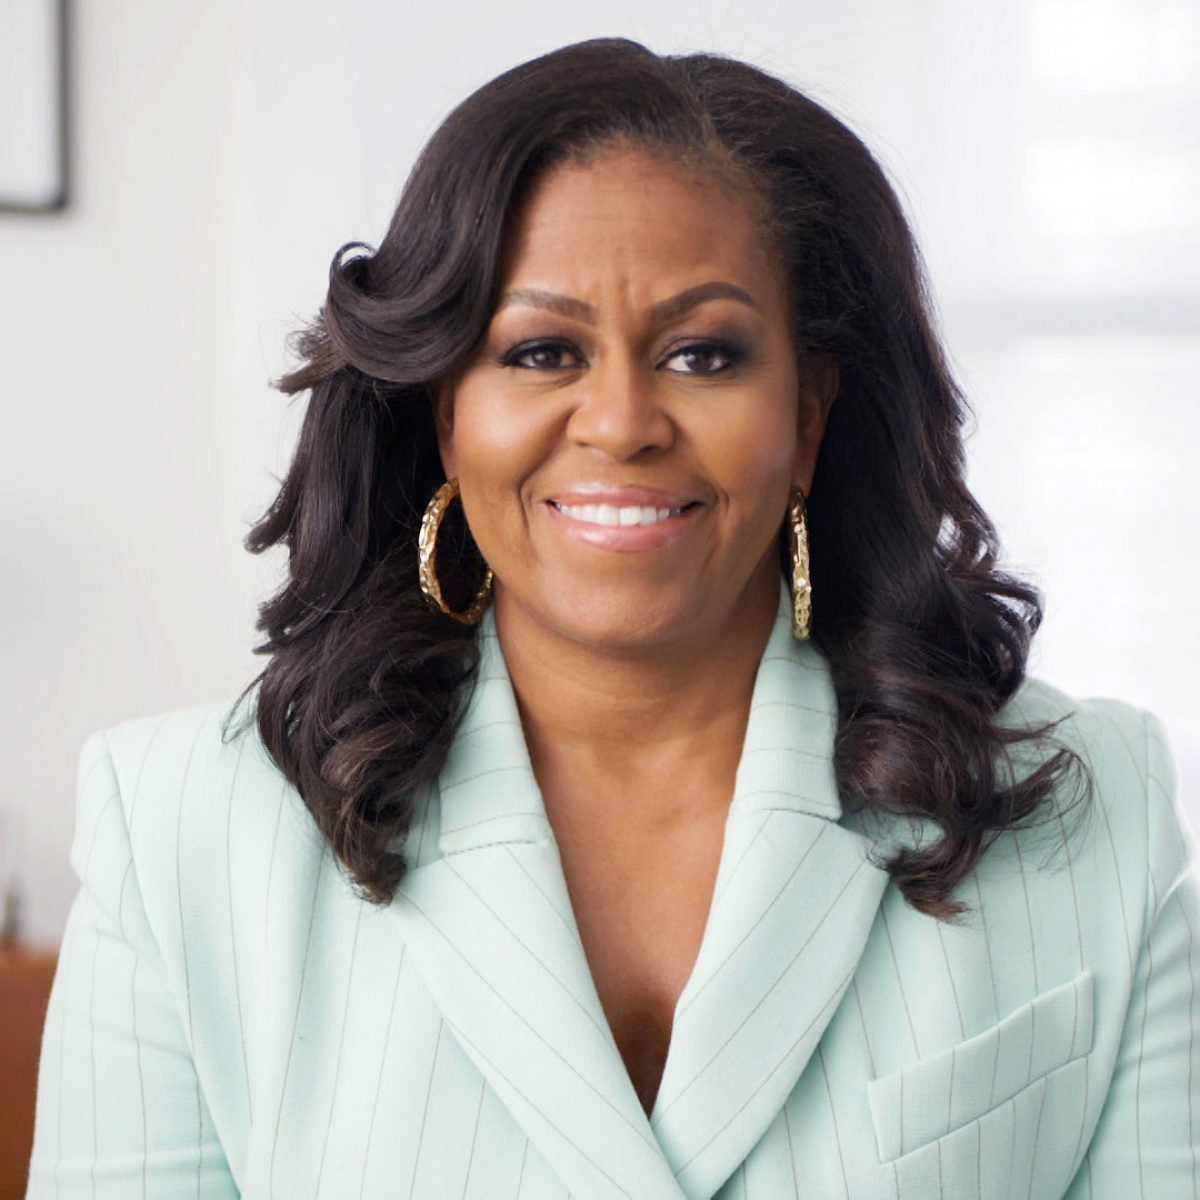 'We Can Do This': Michelle Obama Stars In PSA To Encourage Black People To Get Vaccinated